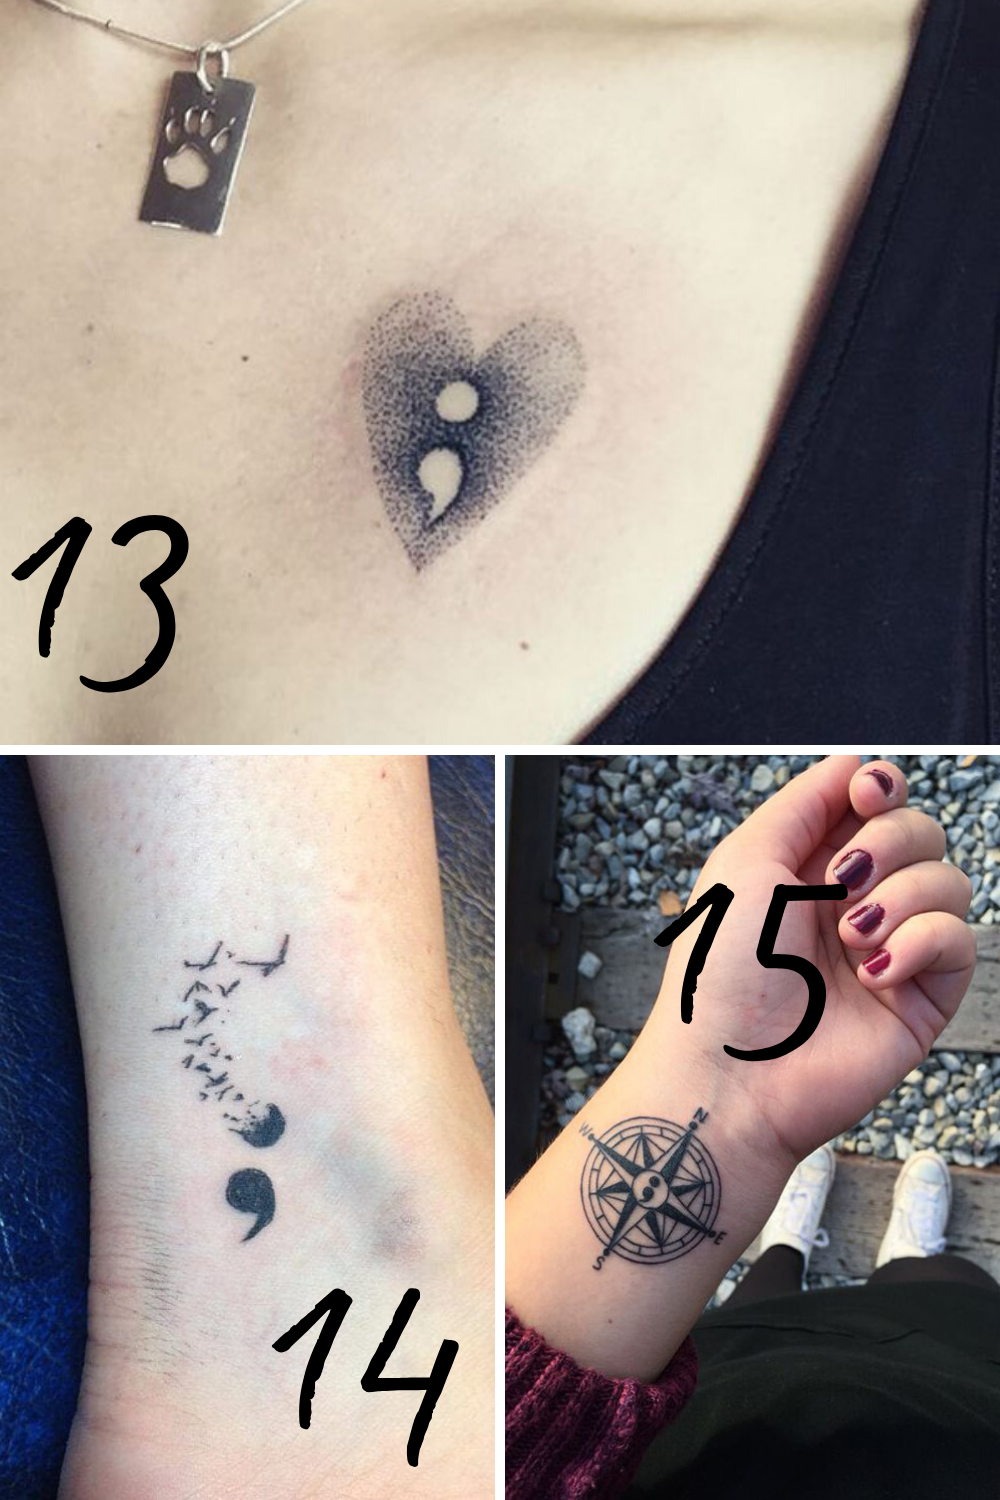 Depression tattoos